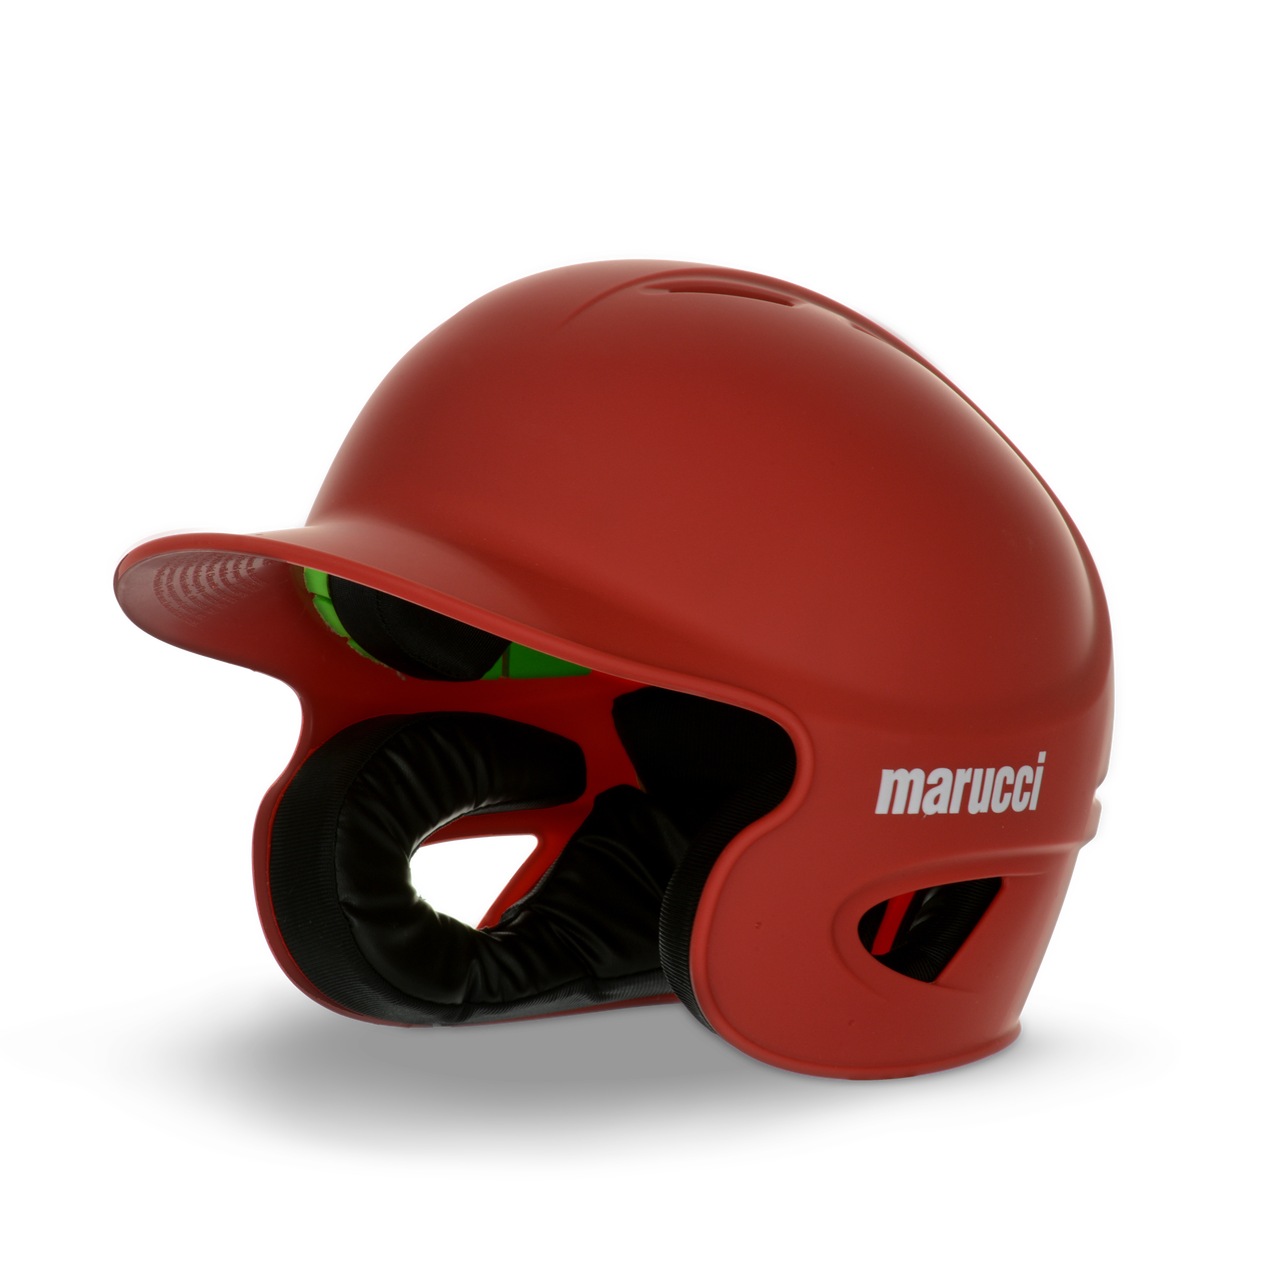 Highspeed marucci sports. Baseball helmet png